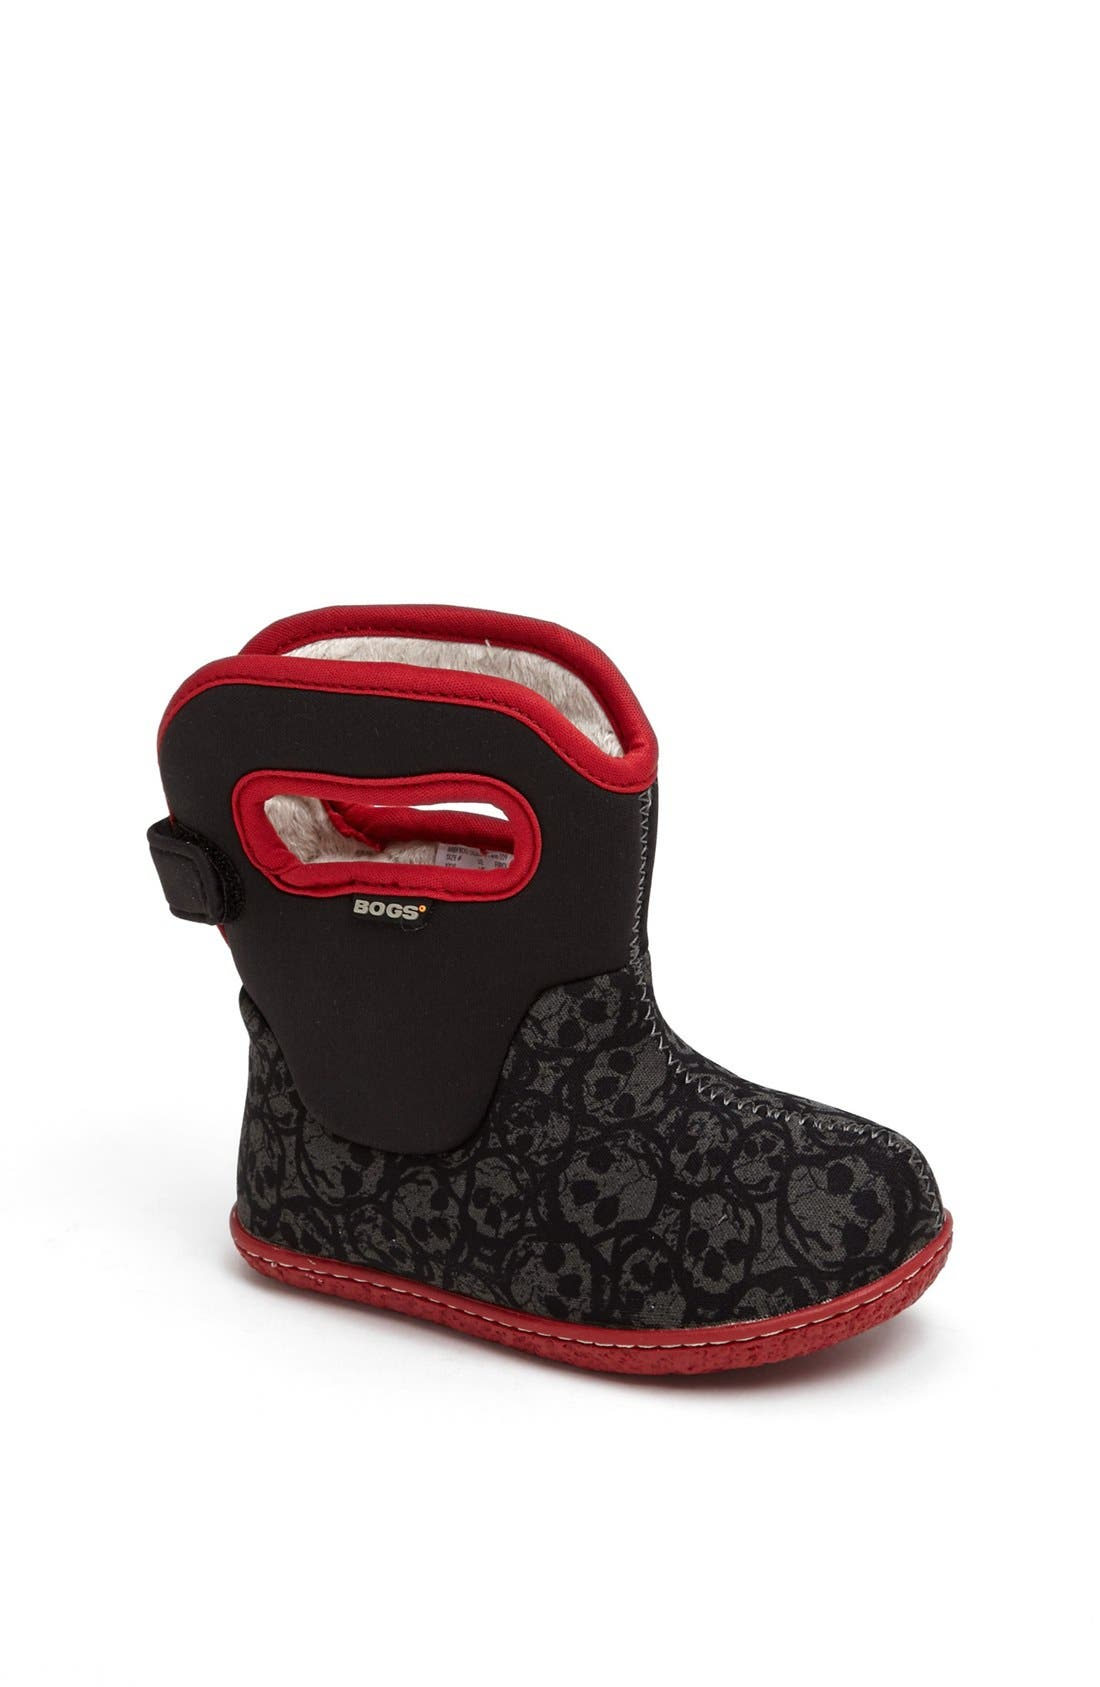 Main Image - Bogs 'Baby Bogs - Skulls' Waterproof Boot (Baby, Walker & Toddler)